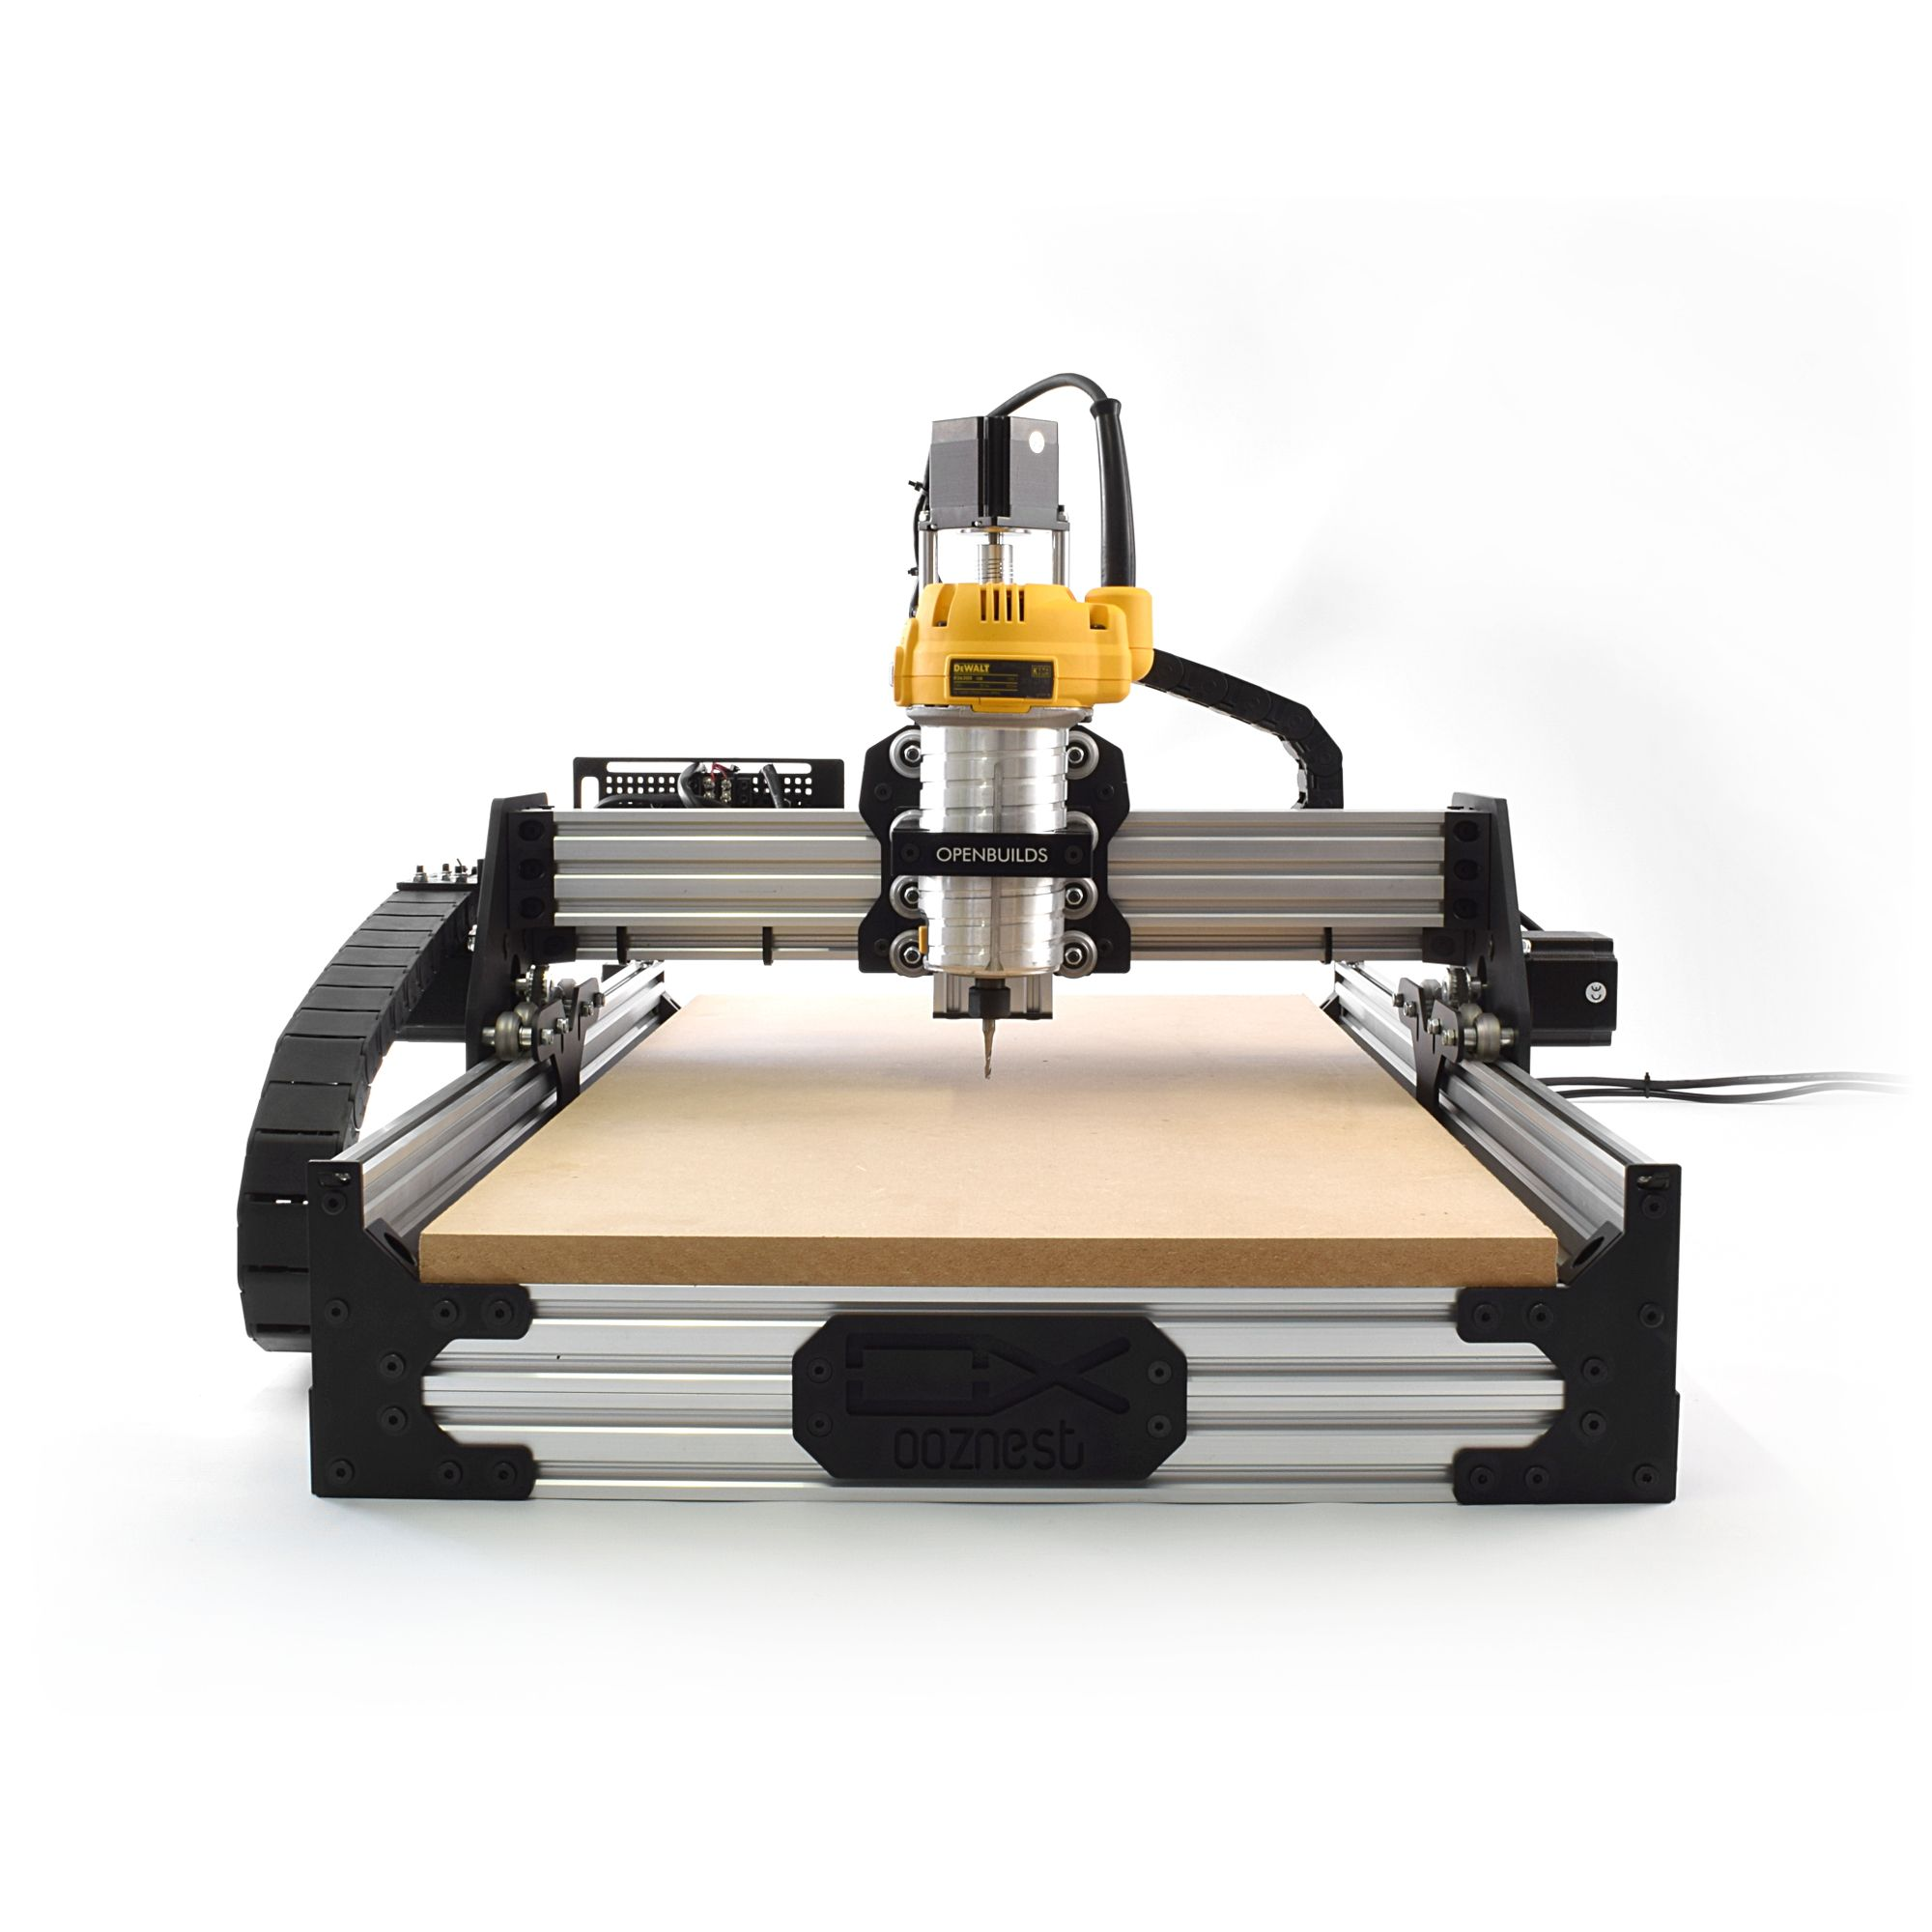 OX CNC Kit The Thought and Development Behind It Cnc